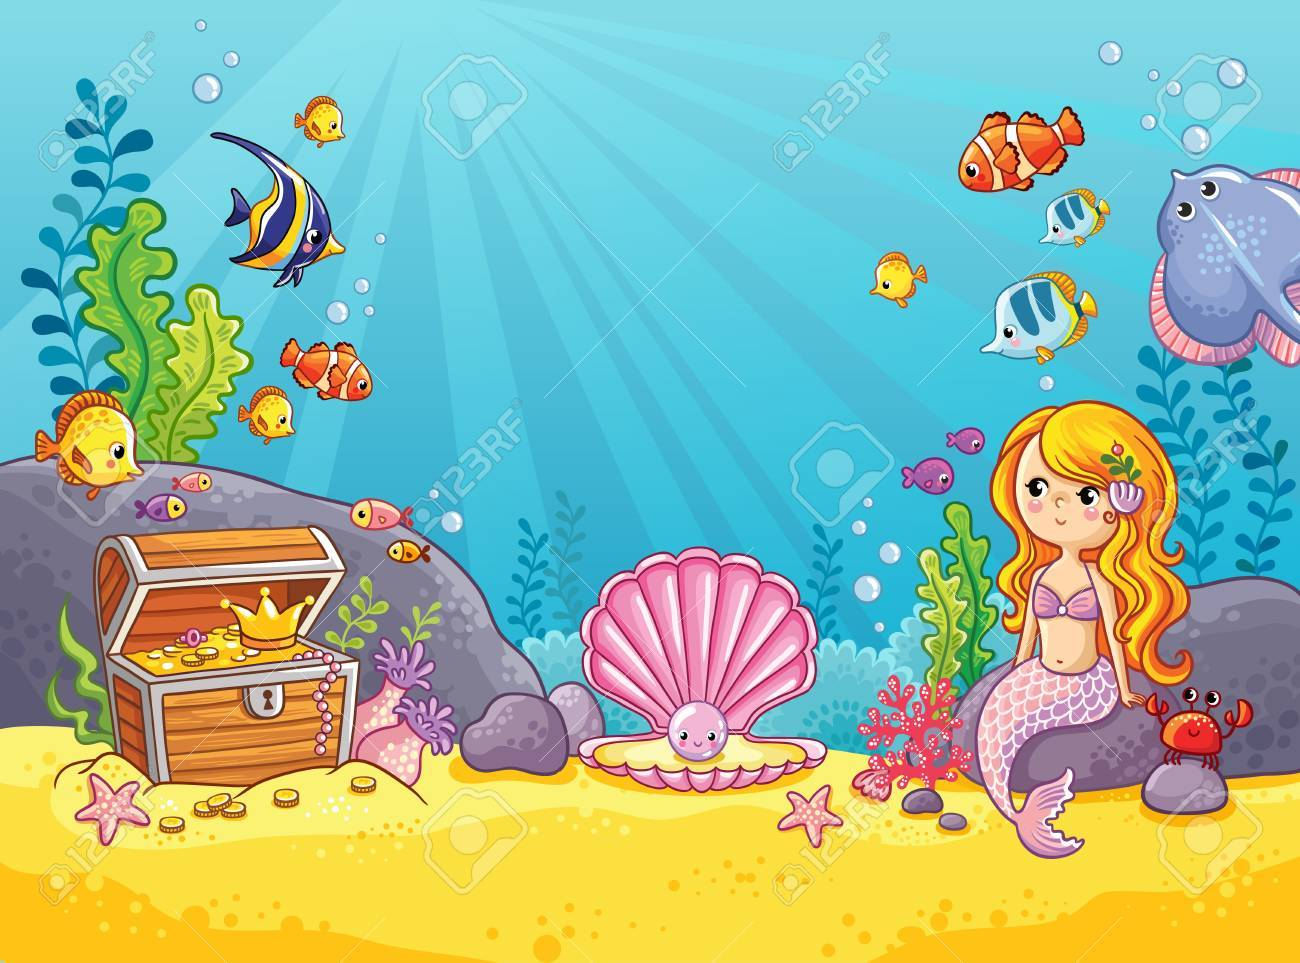 Vector background with an underwater world in a children's style. A mermaid is sitting on a rock. Wooden chest with gold on the bottom of the sea. Seabed in a cartoon style. - 74728517